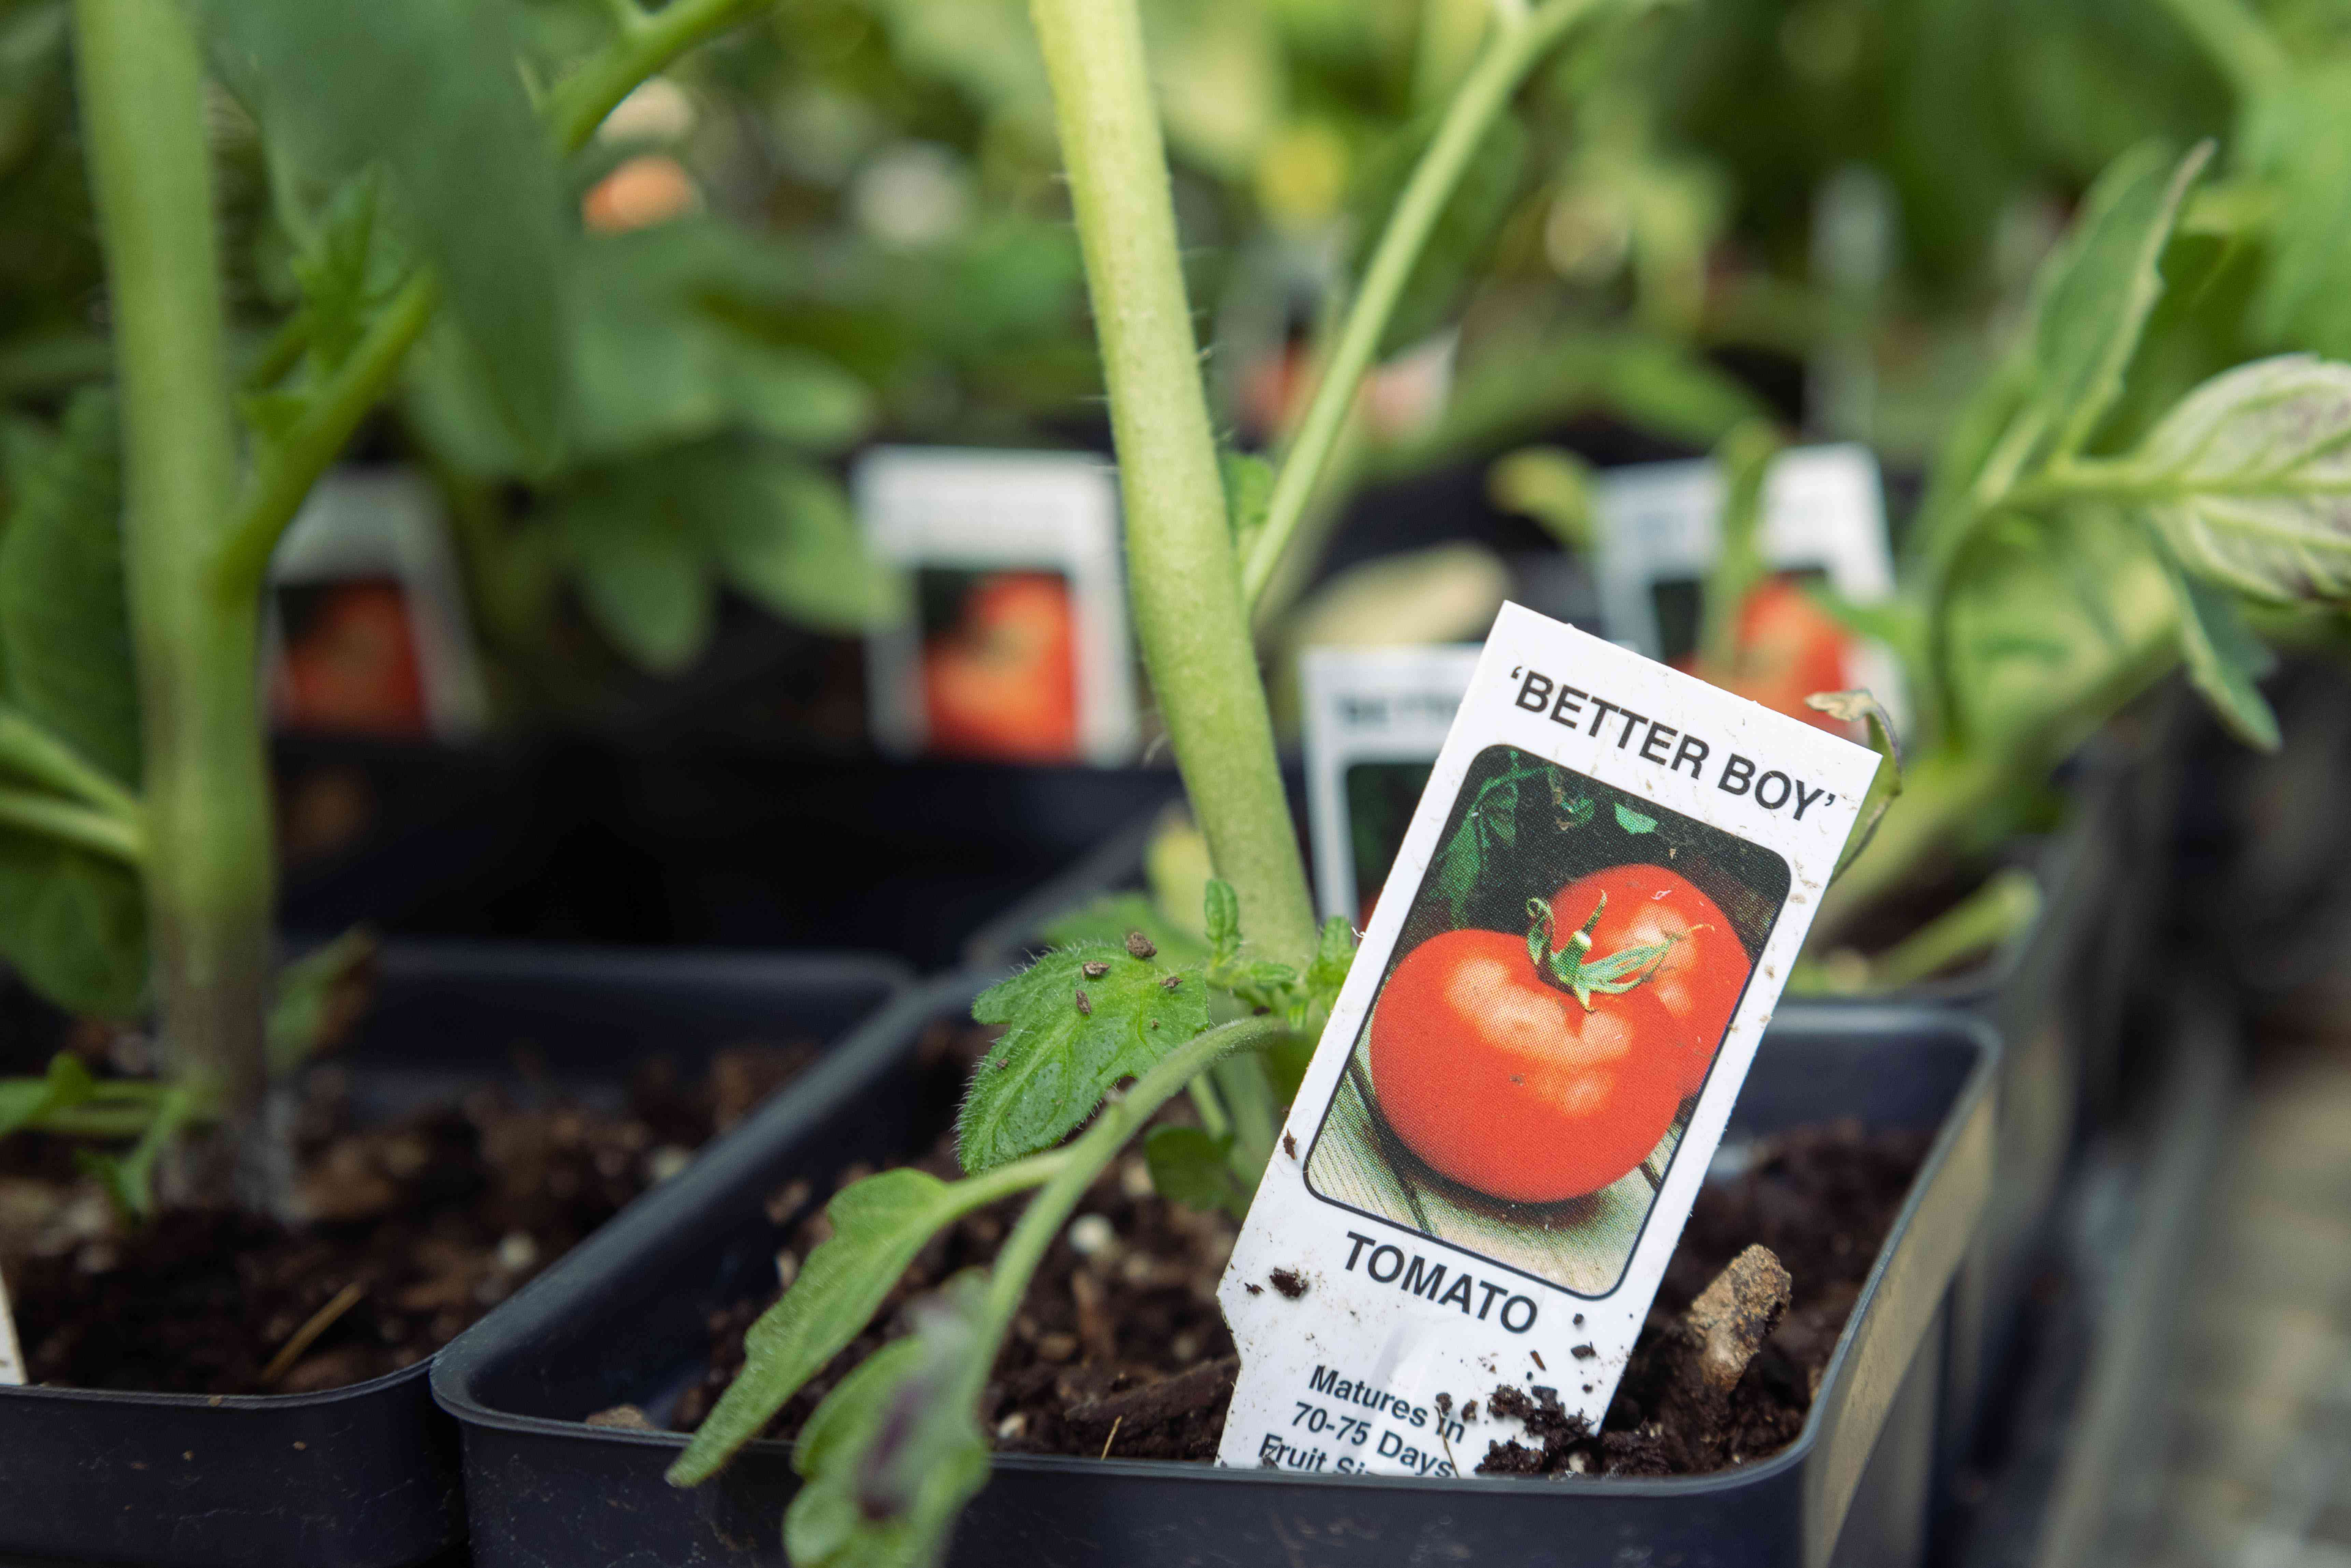 multiple tomato starter plants with label showing